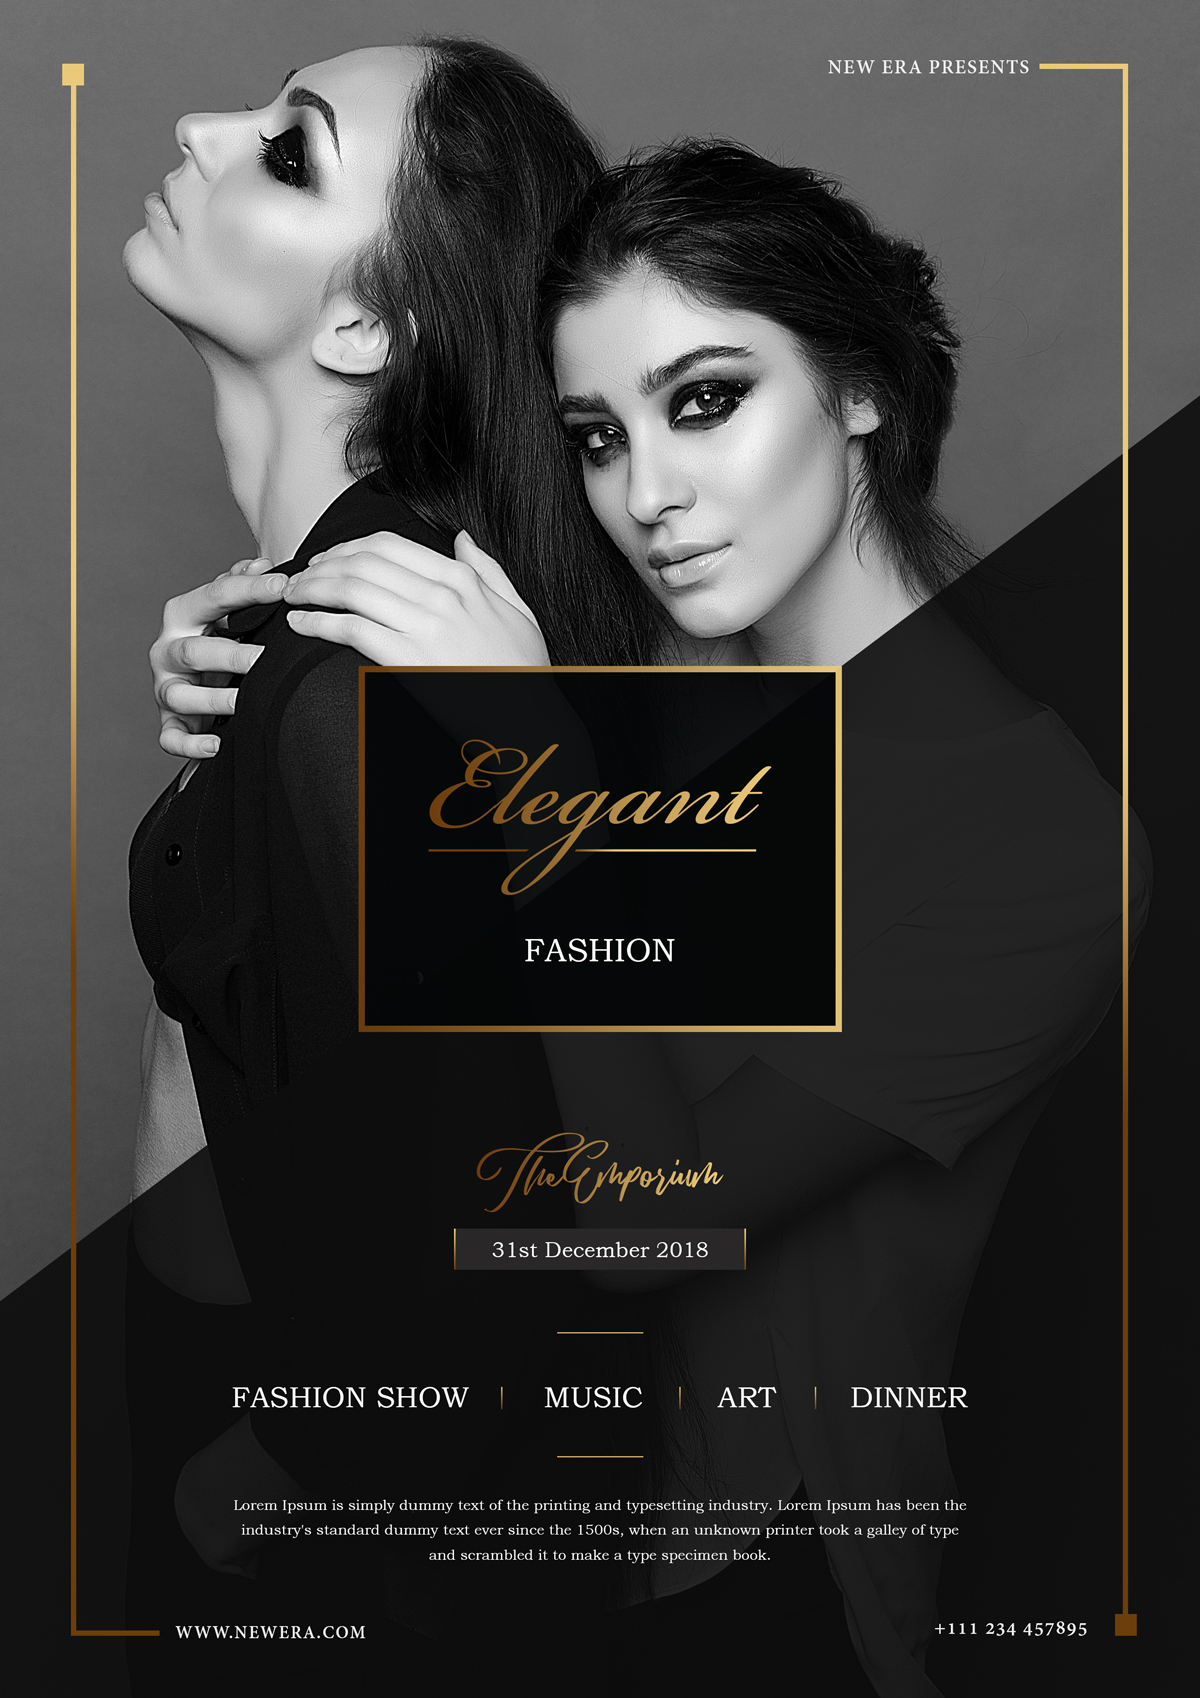 Free-Elegant-Fashion-Flyer-Template-600